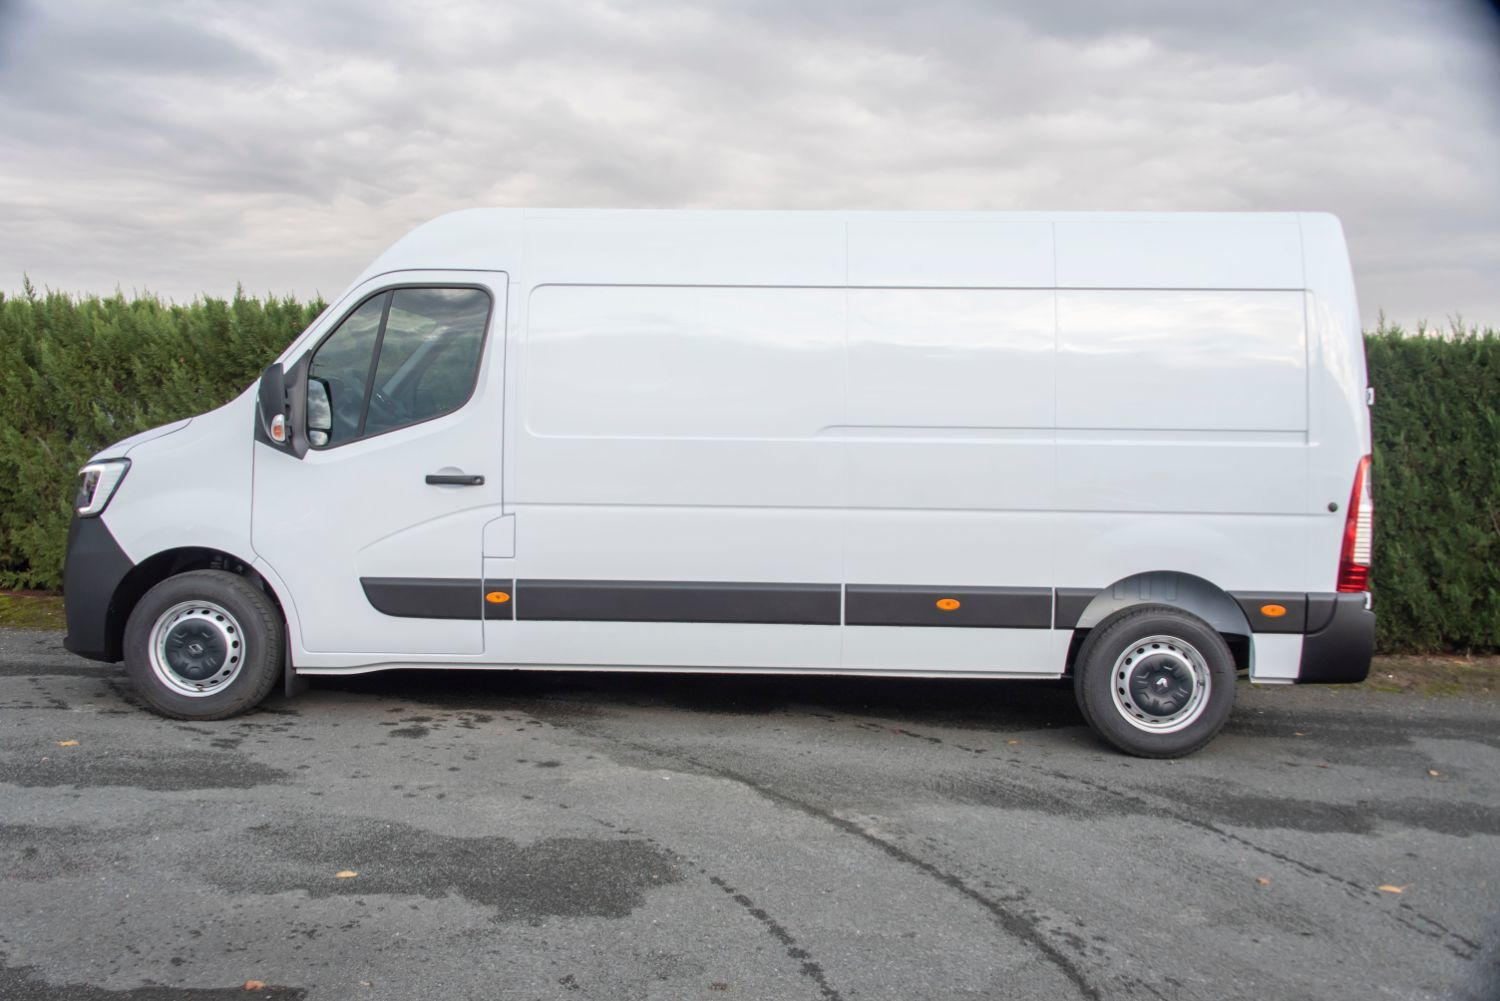 RENAULT MASTER L3H2 3500 2.3L DCI 150 CH GRD CFT NAV 315 € HT/MOIS